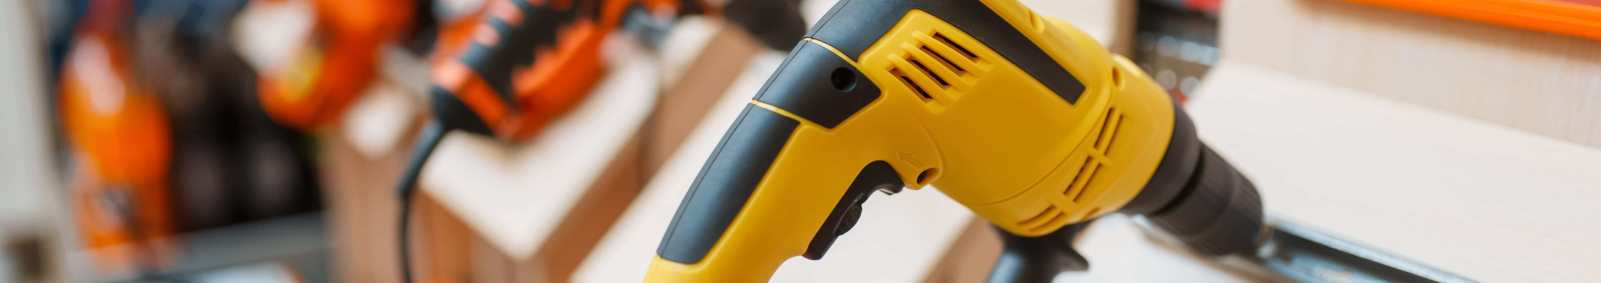 Hand Tools vs Power Tools: The Pros and Cons Of Hand Tools